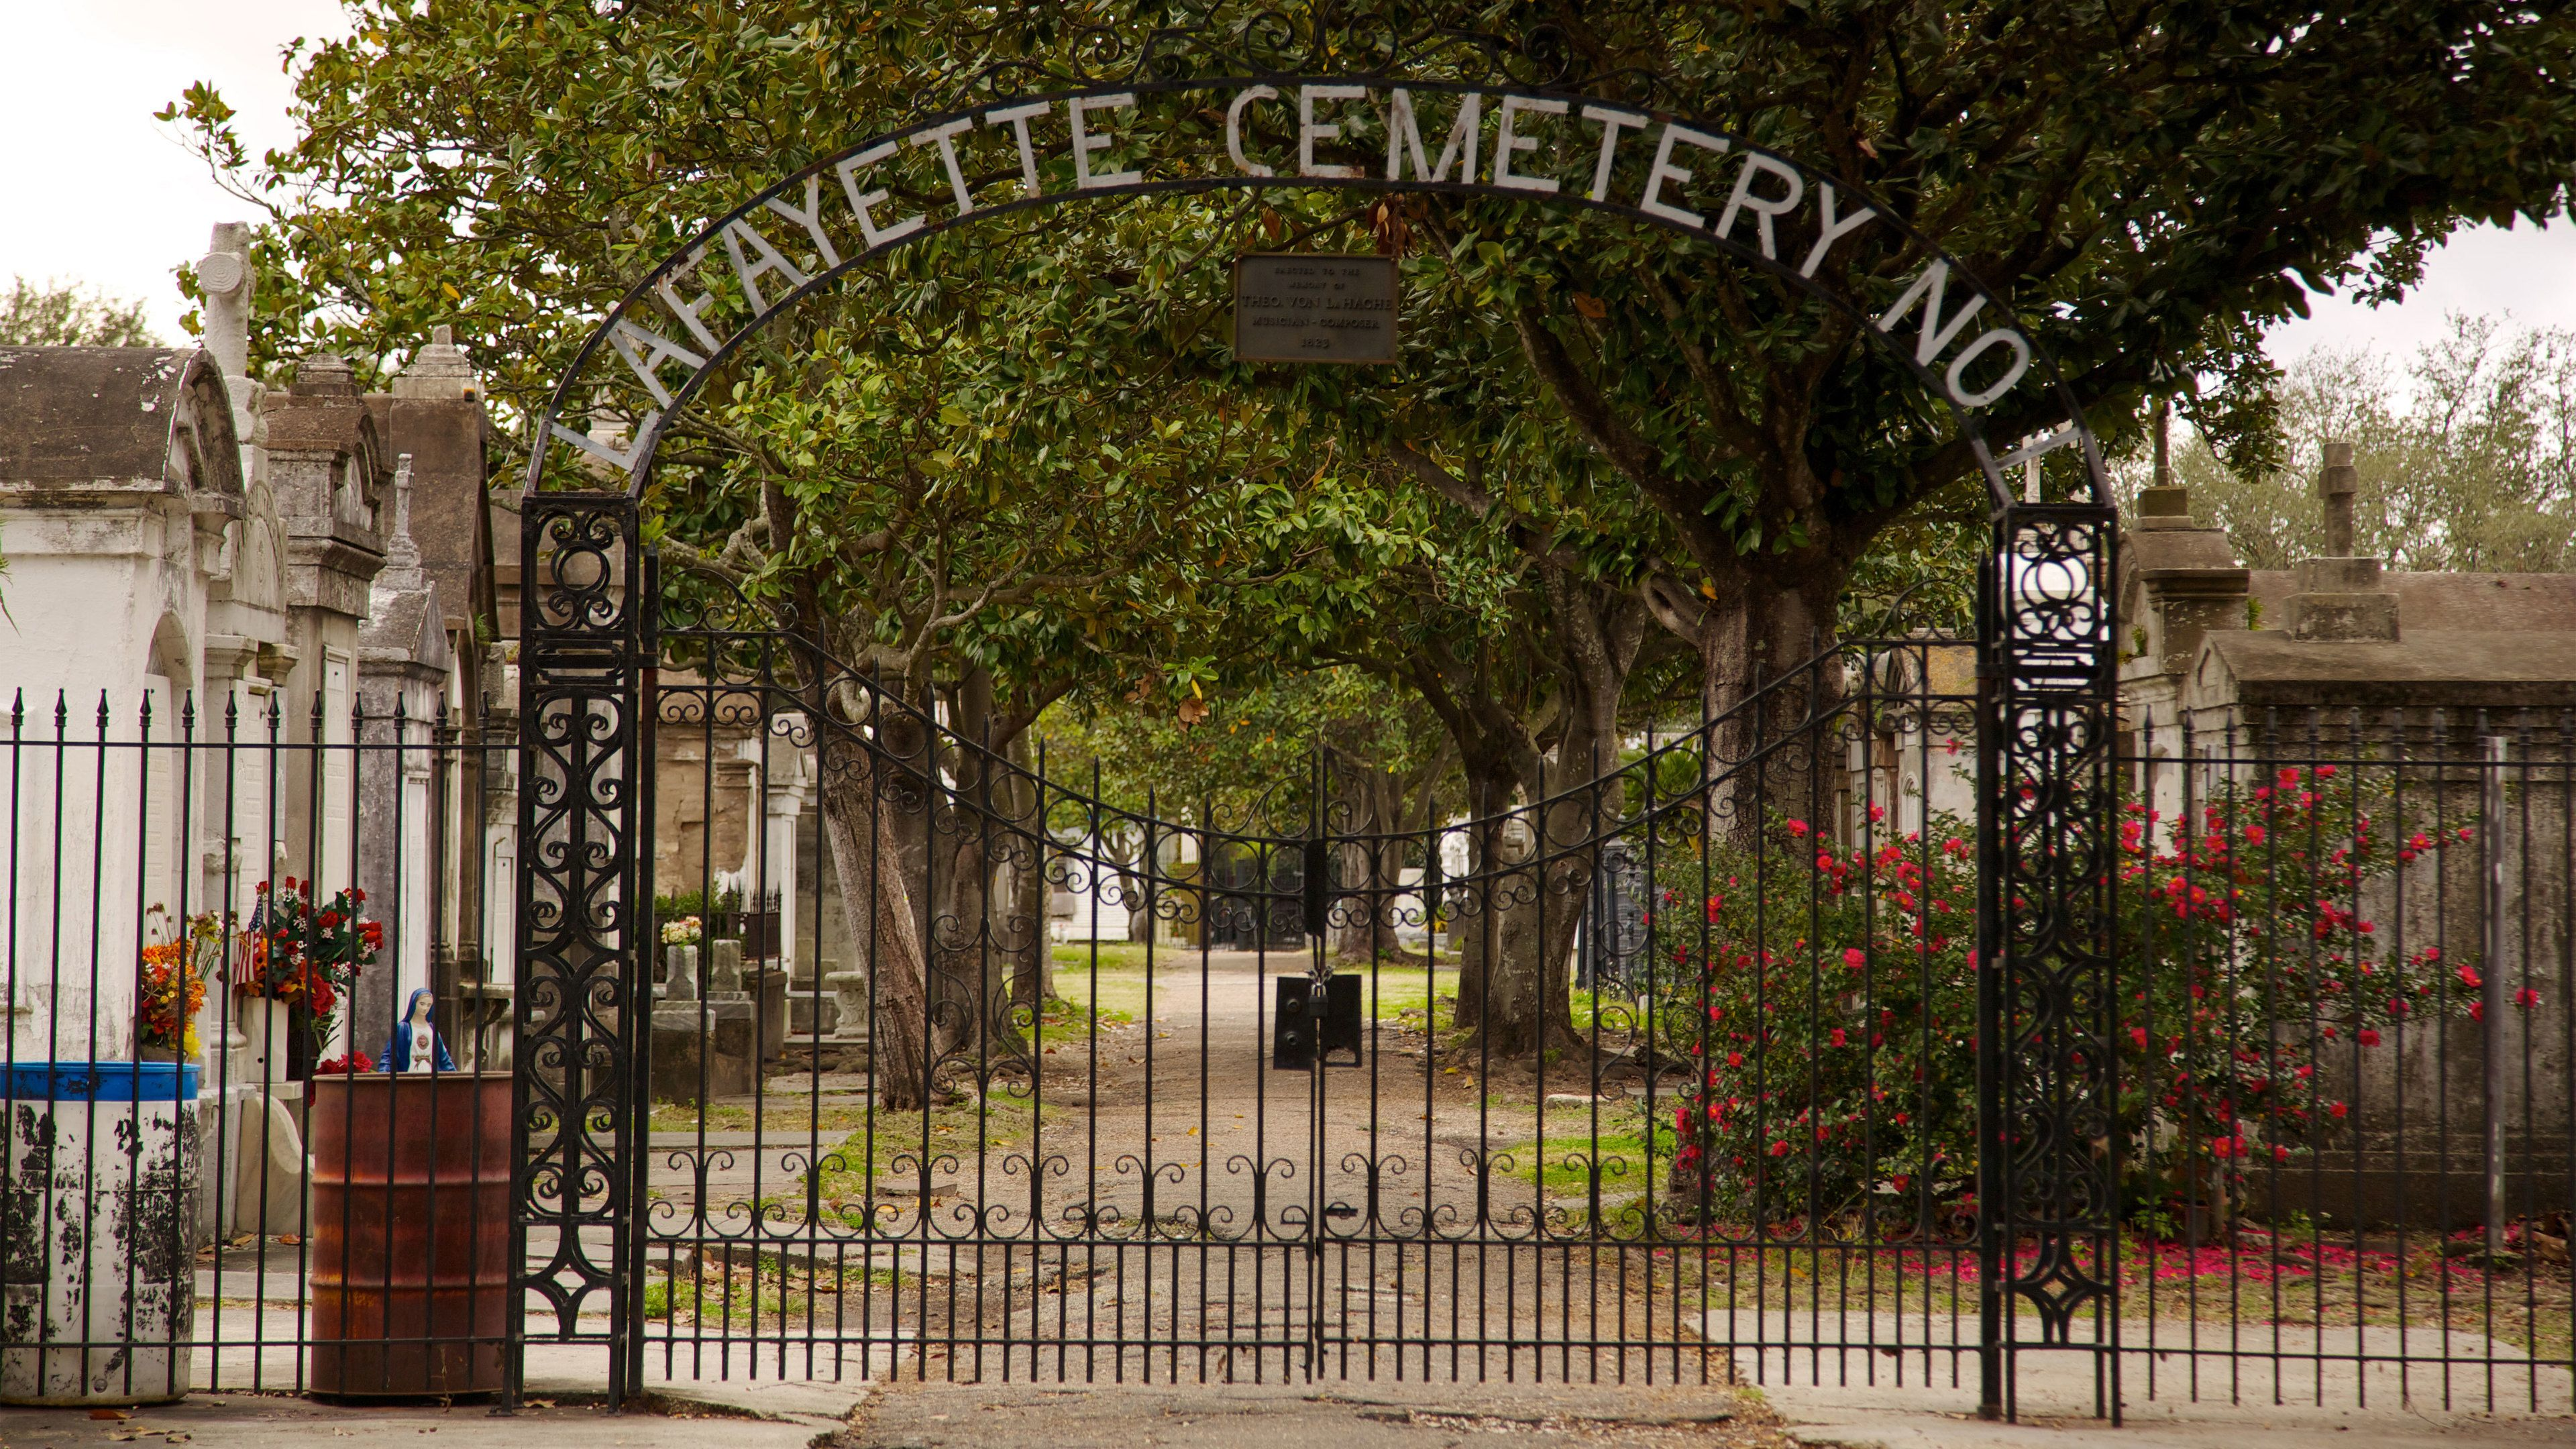 Entrance gate to Lafayette Cemetery No 1 in New Orleans